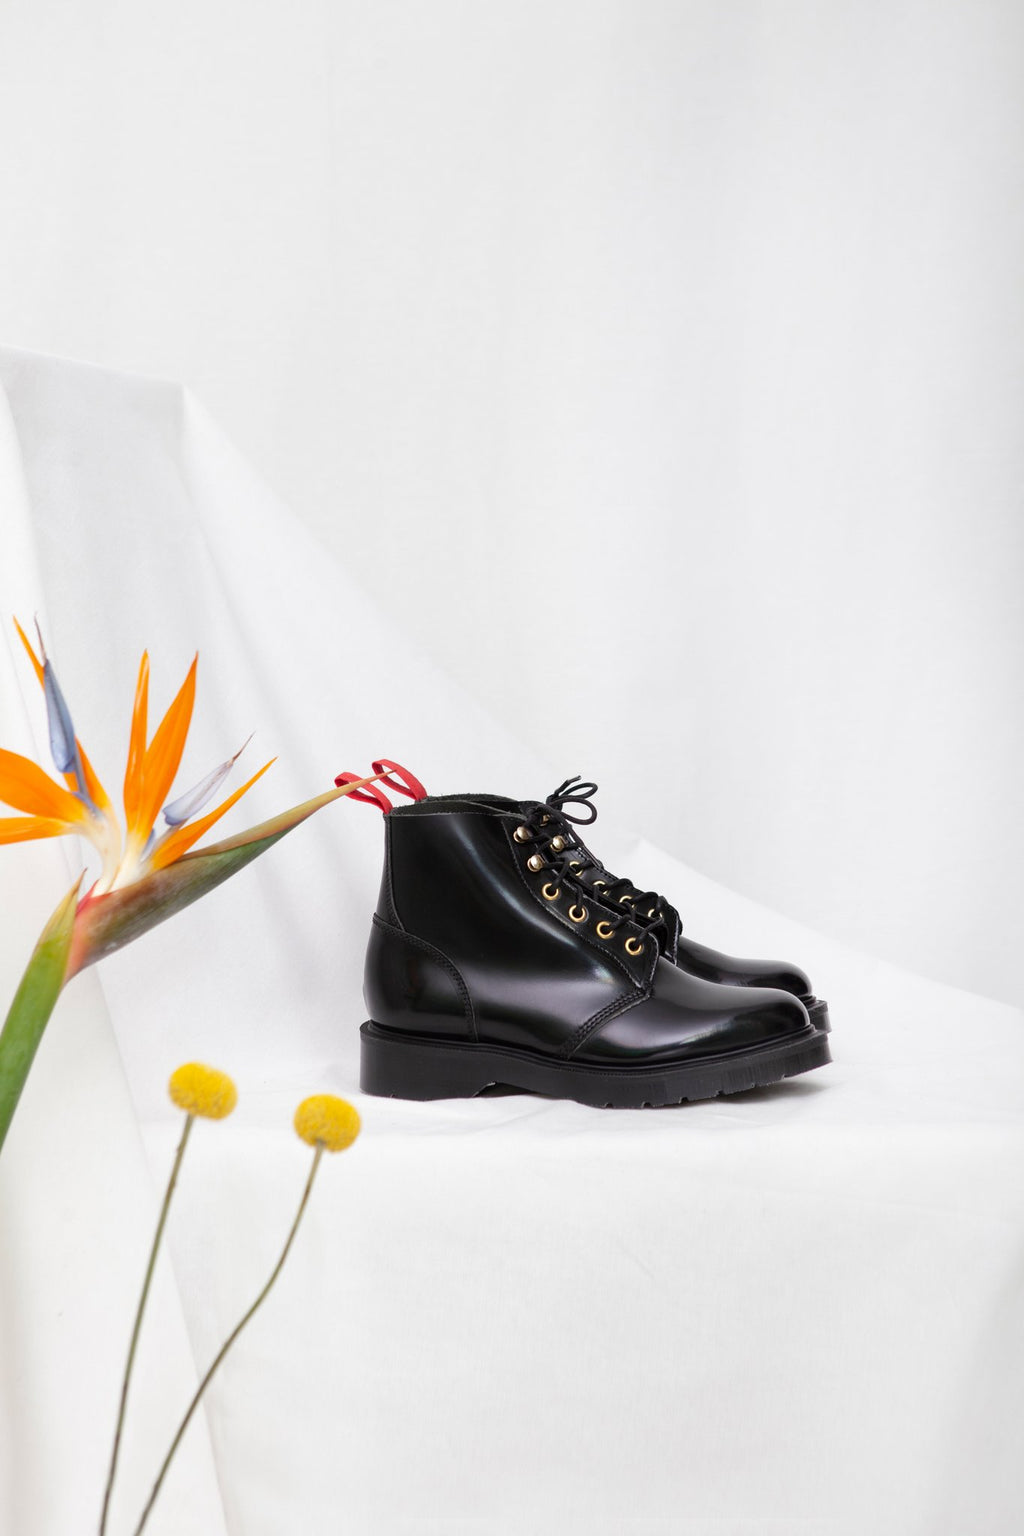 Miss L Fire x Solovair black leather chunky sole ladies Derby boot. Made in England.